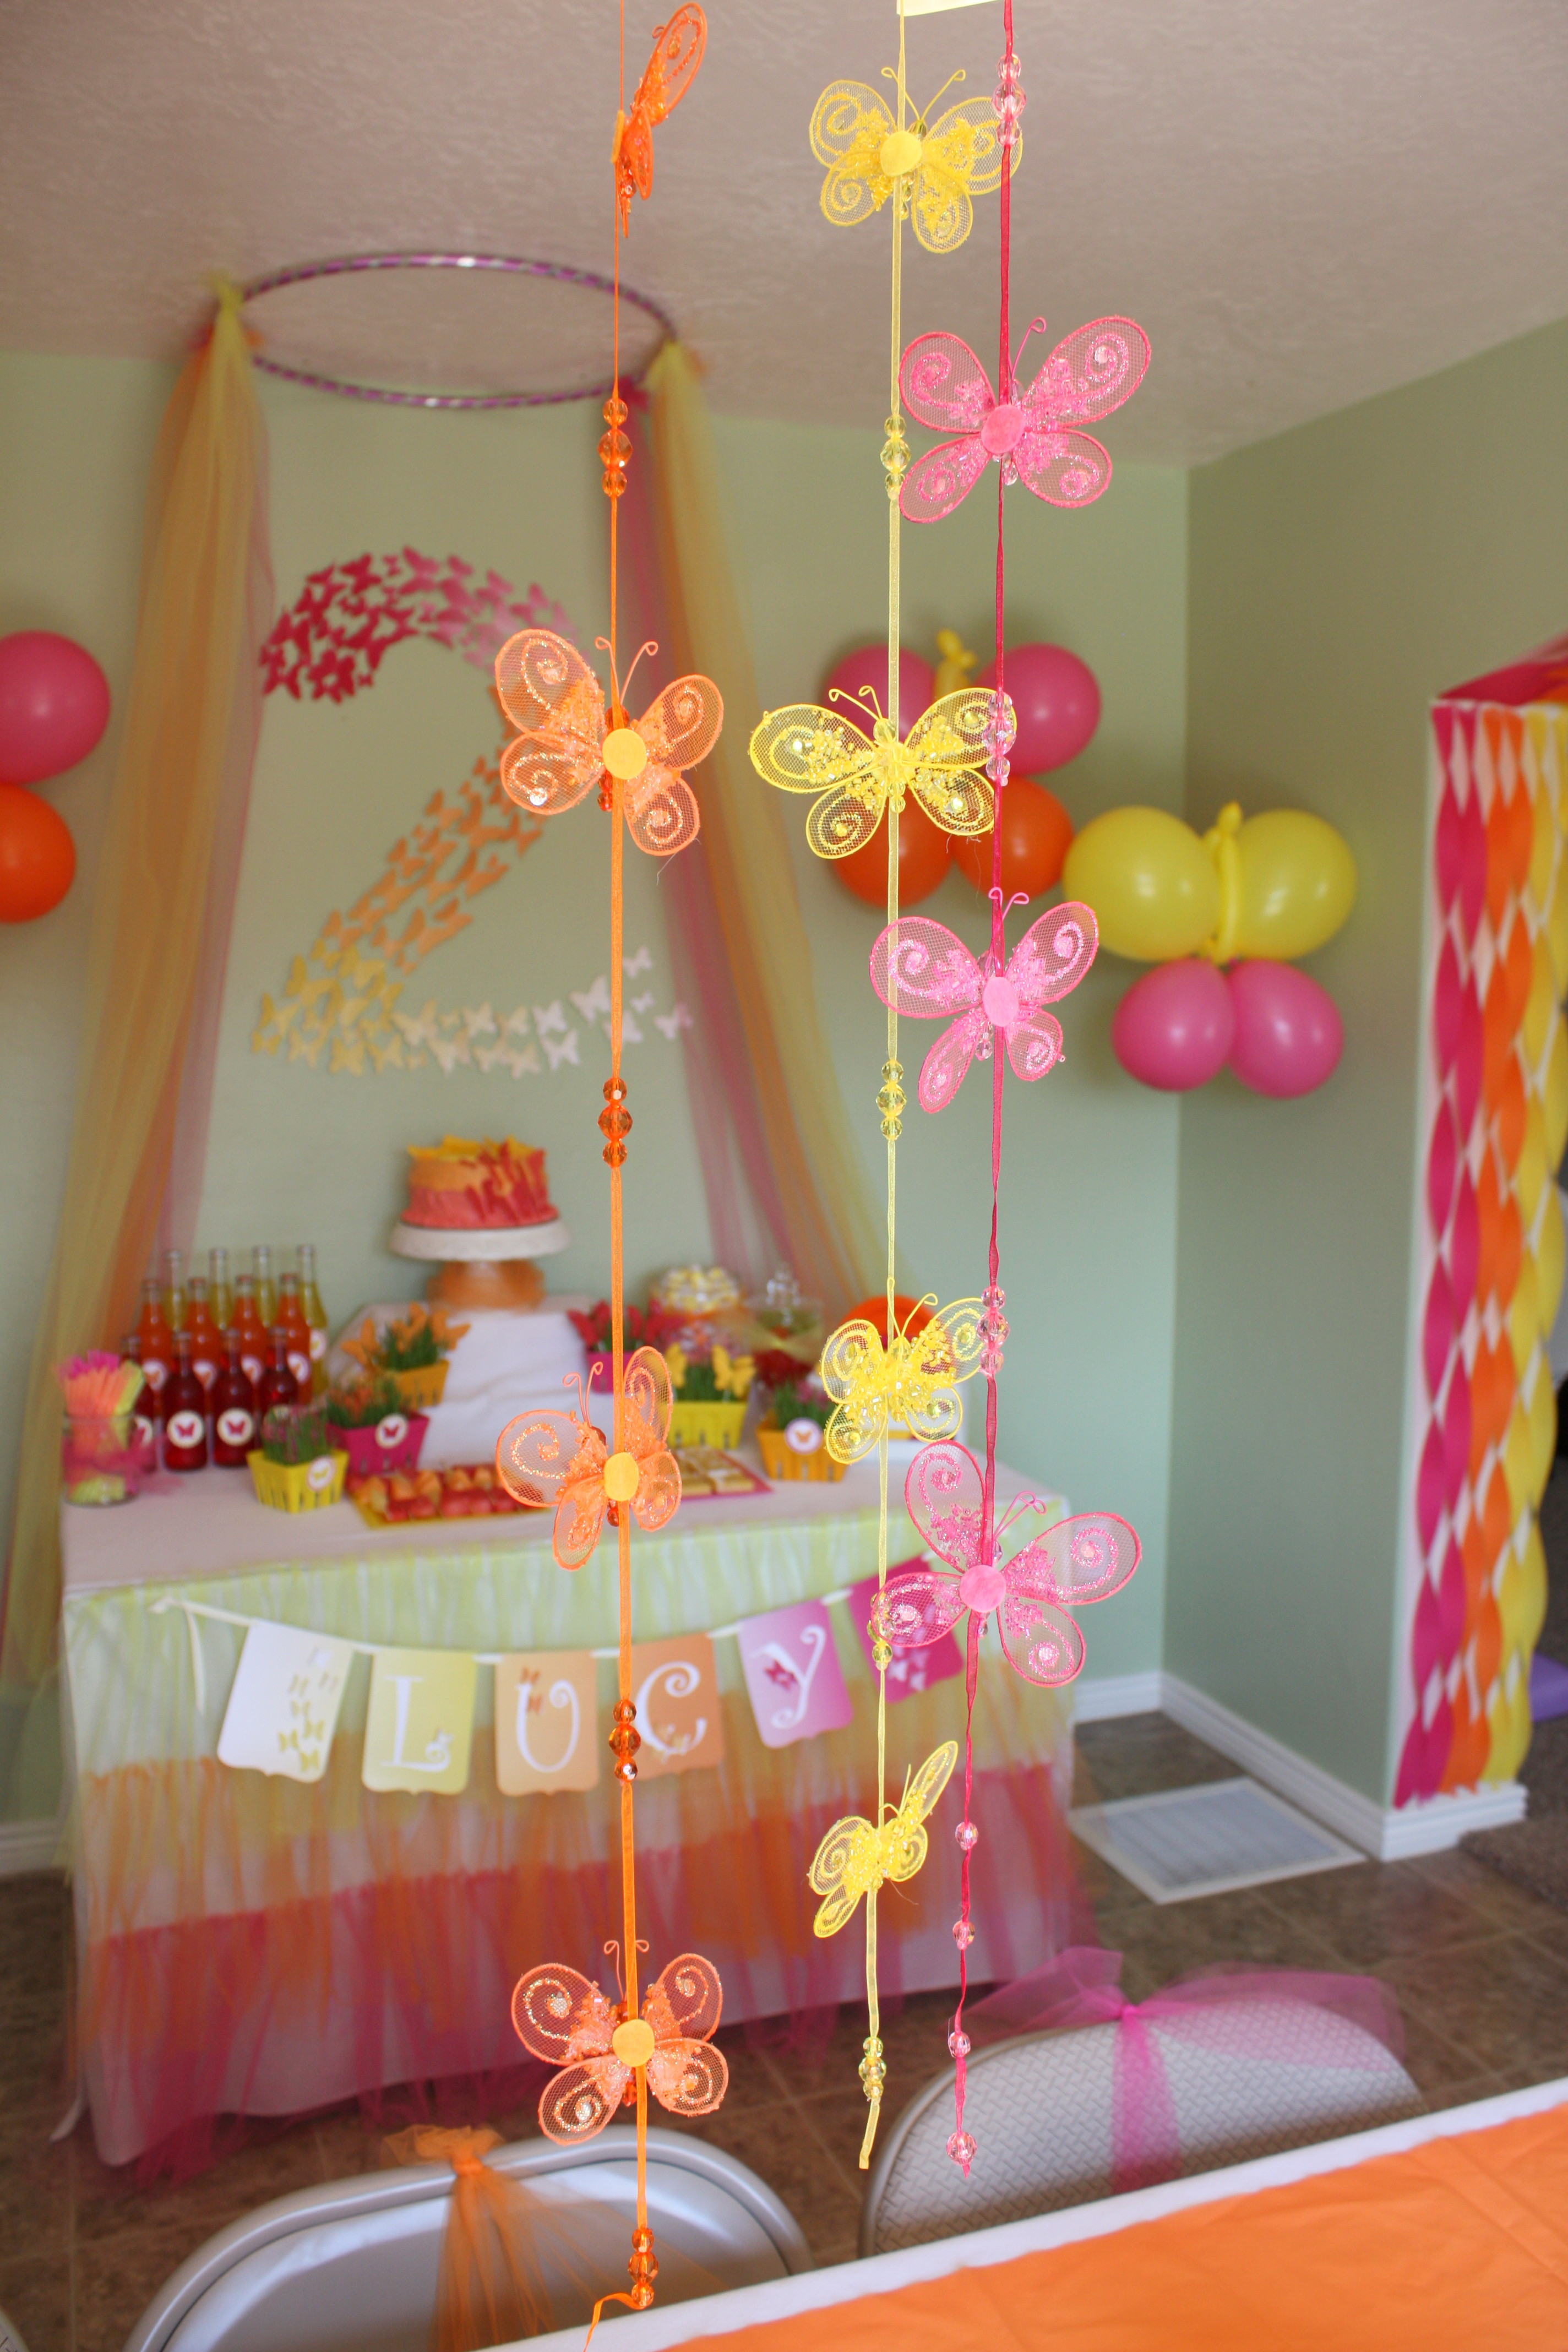 Best ideas about Butterfly Birthday Decor . Save or Pin Butterfly Themed Birthday Party Decorations events to Now.